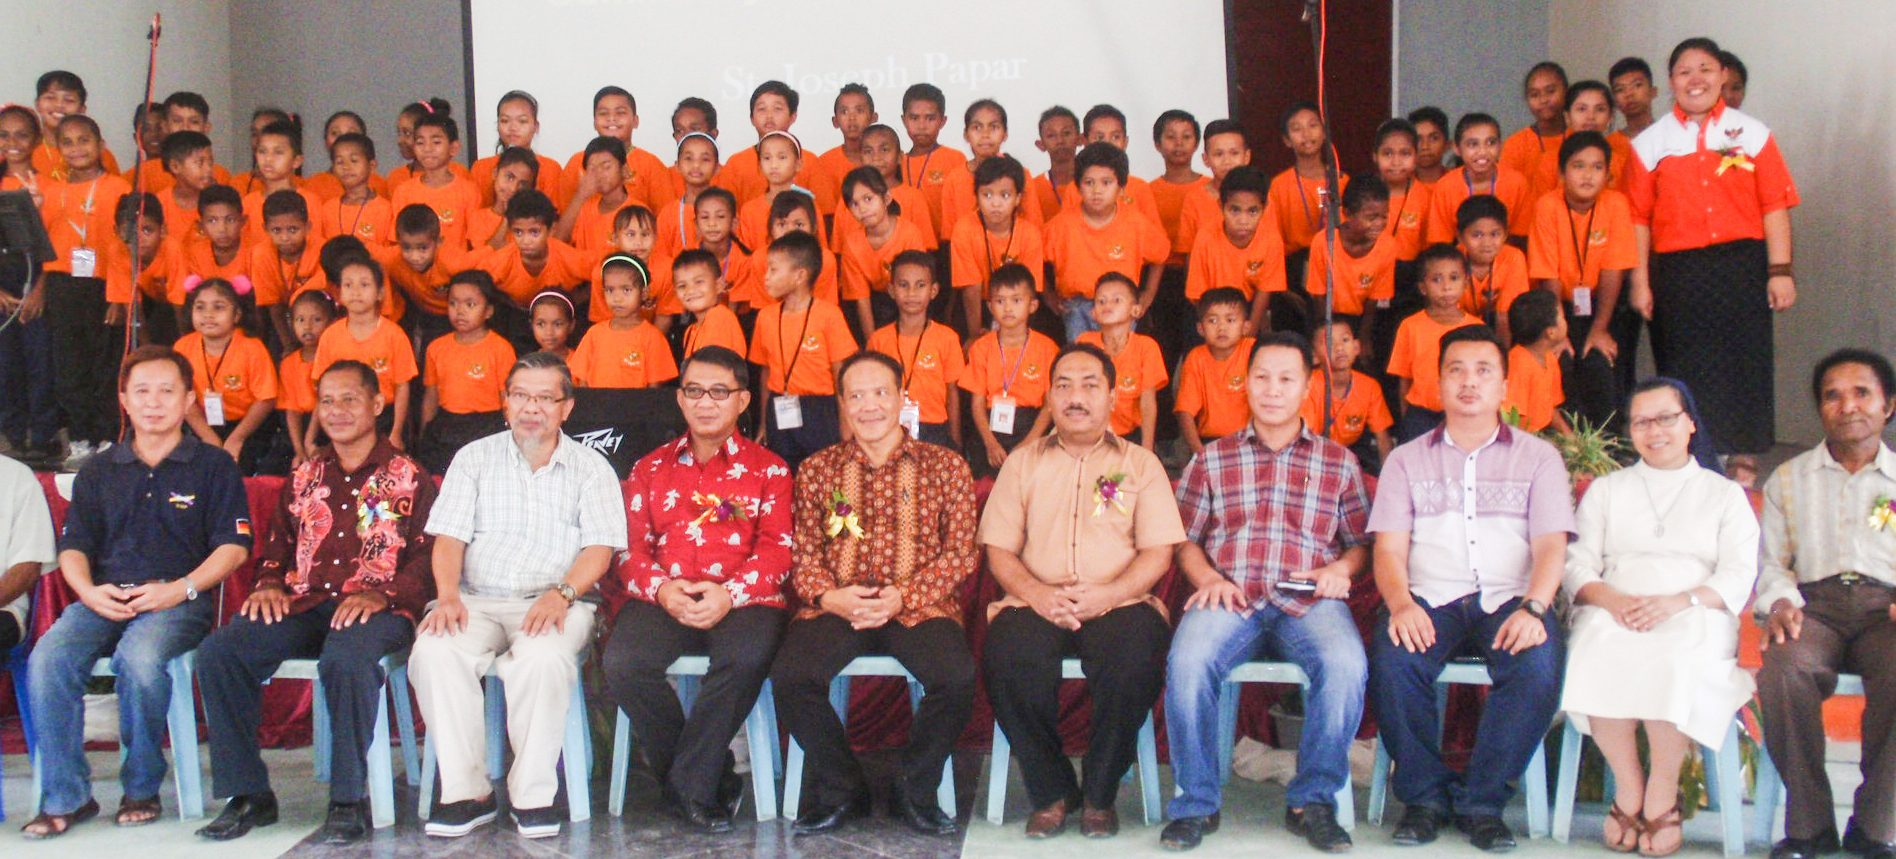 Group photo of the officials and children at the end the event.